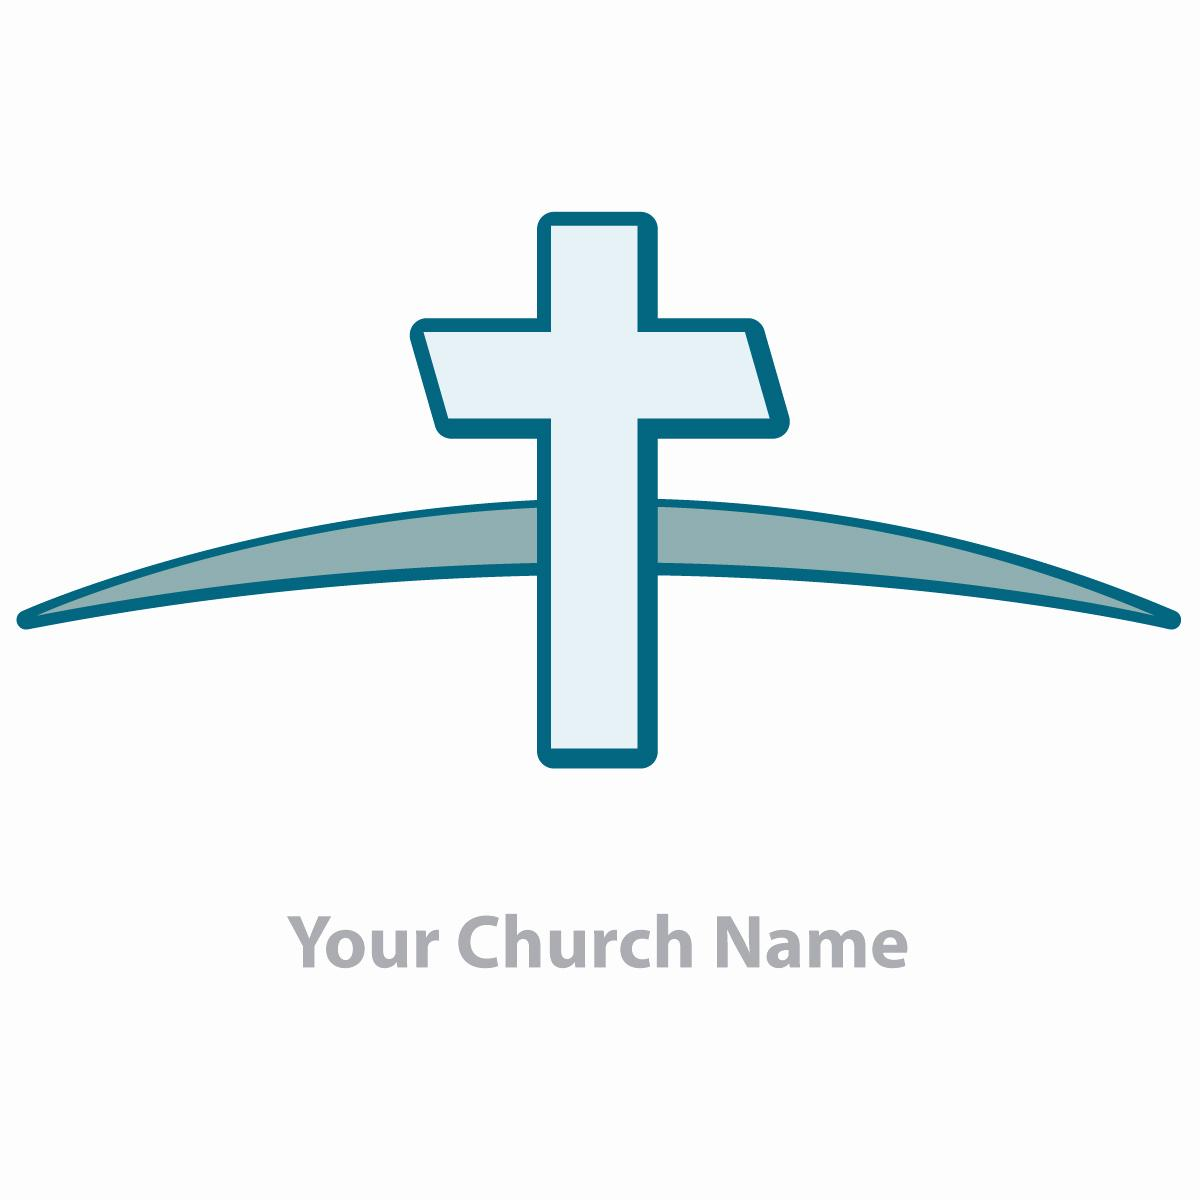 Church Letterhead And Logo Design Templates